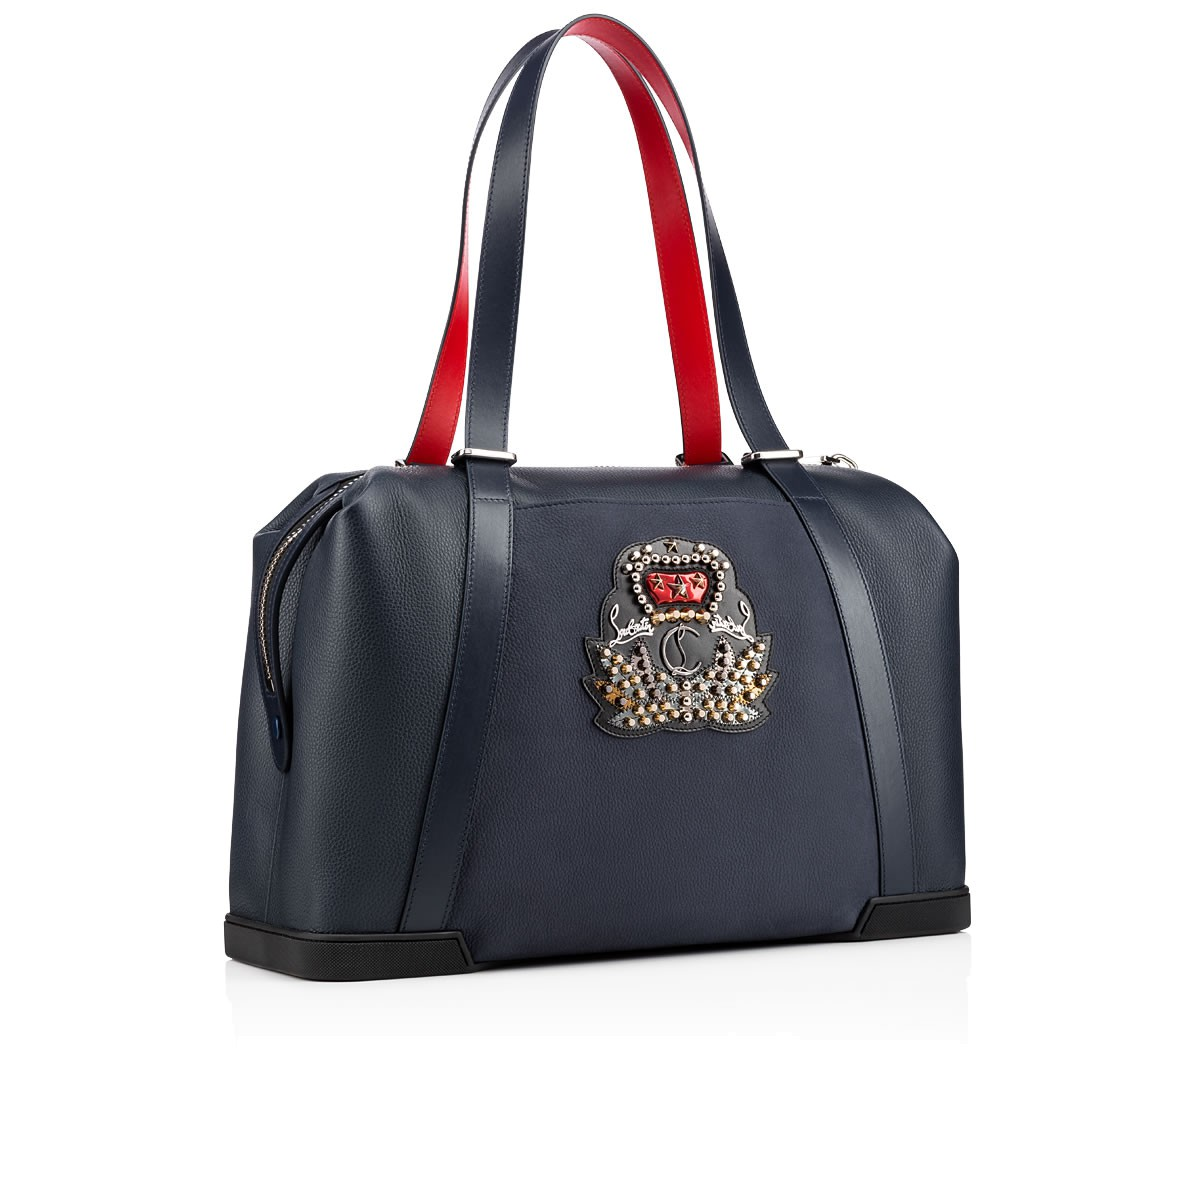 Men Bag - Bagdamon Document-holder - Christian Louboutin